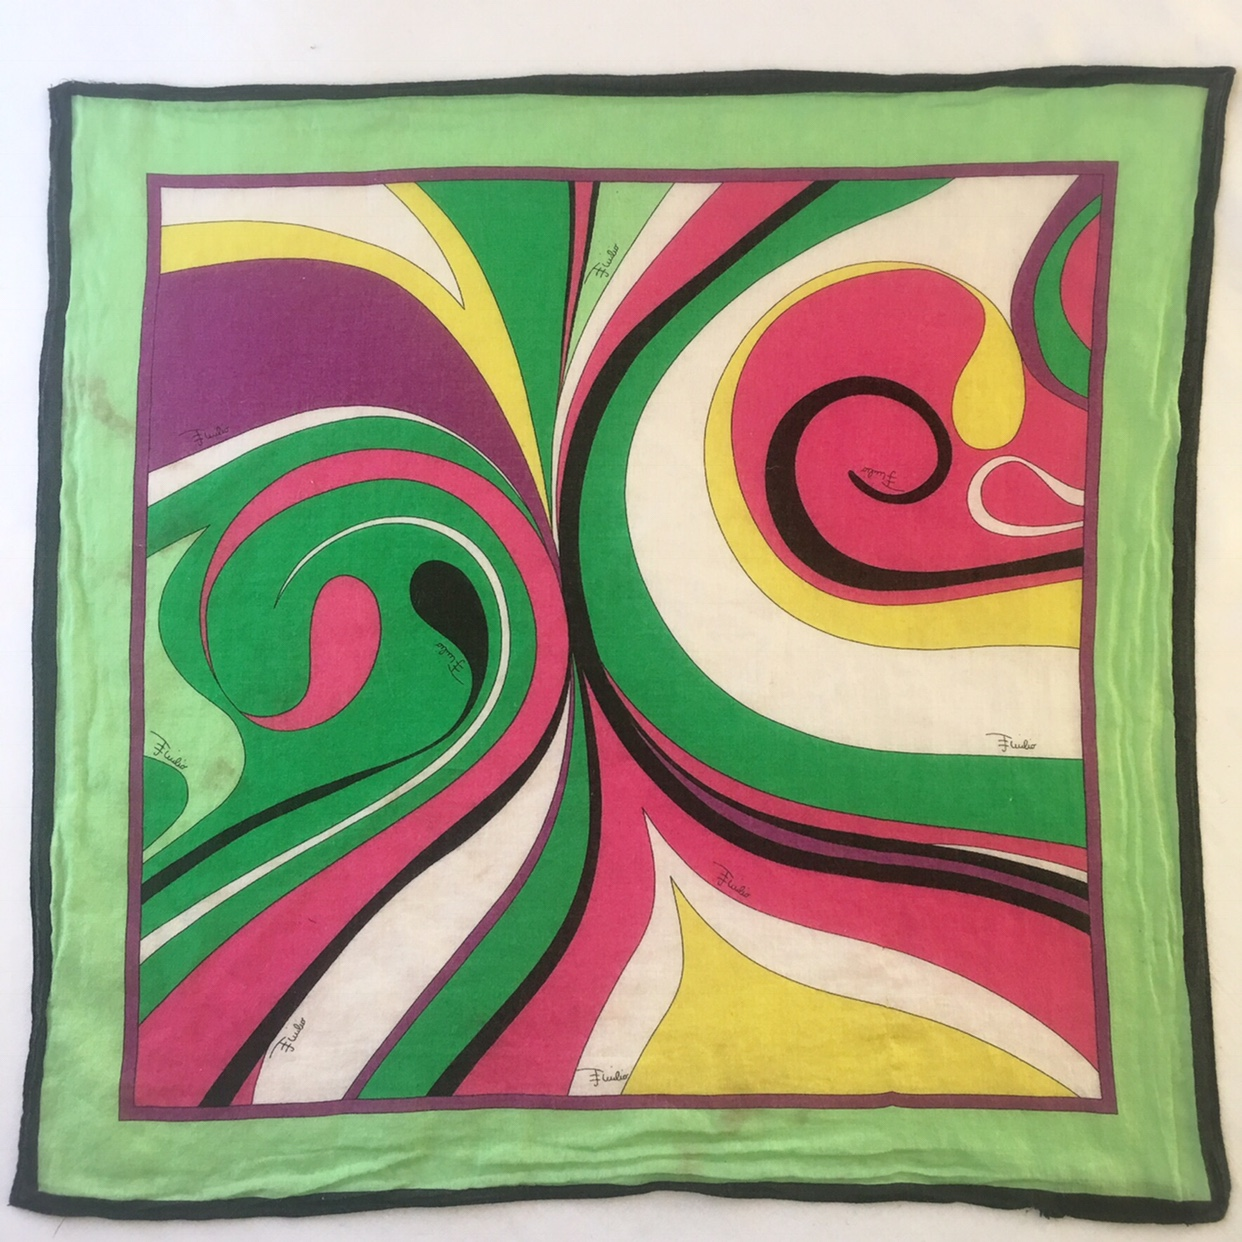 buy online 1e4b4 ca558 Vintage Emilio Pucci Firenze scarf! Lime green, hot... - Depop